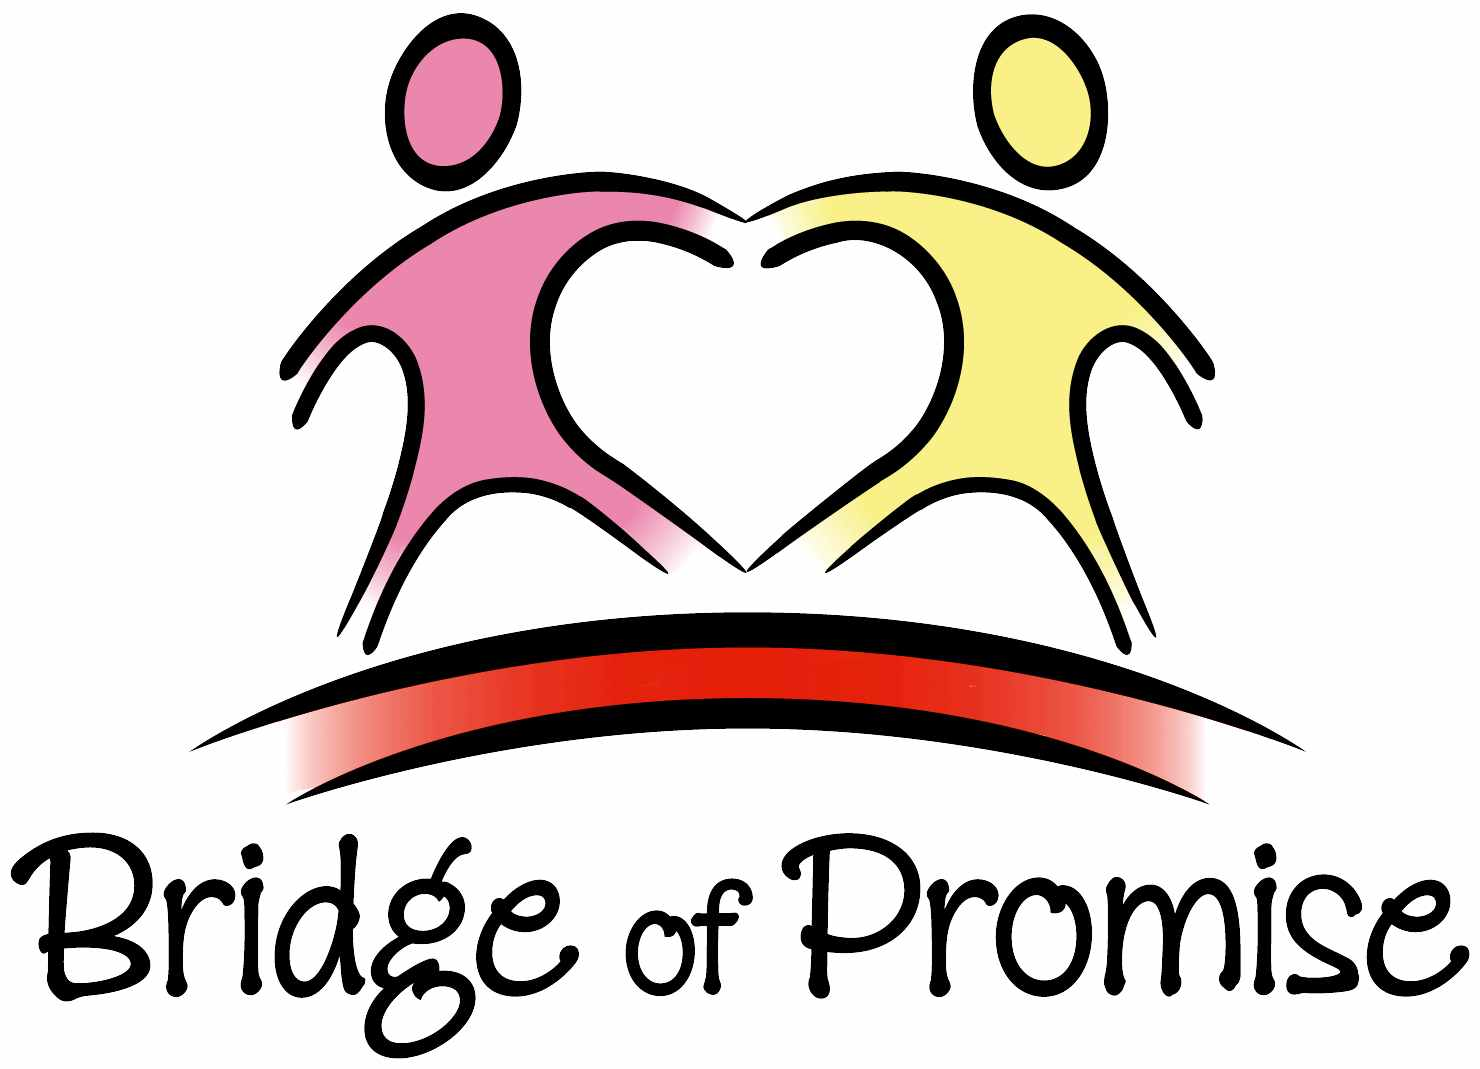 Bridge of Promise to provide adults with disabilities access to art activities.